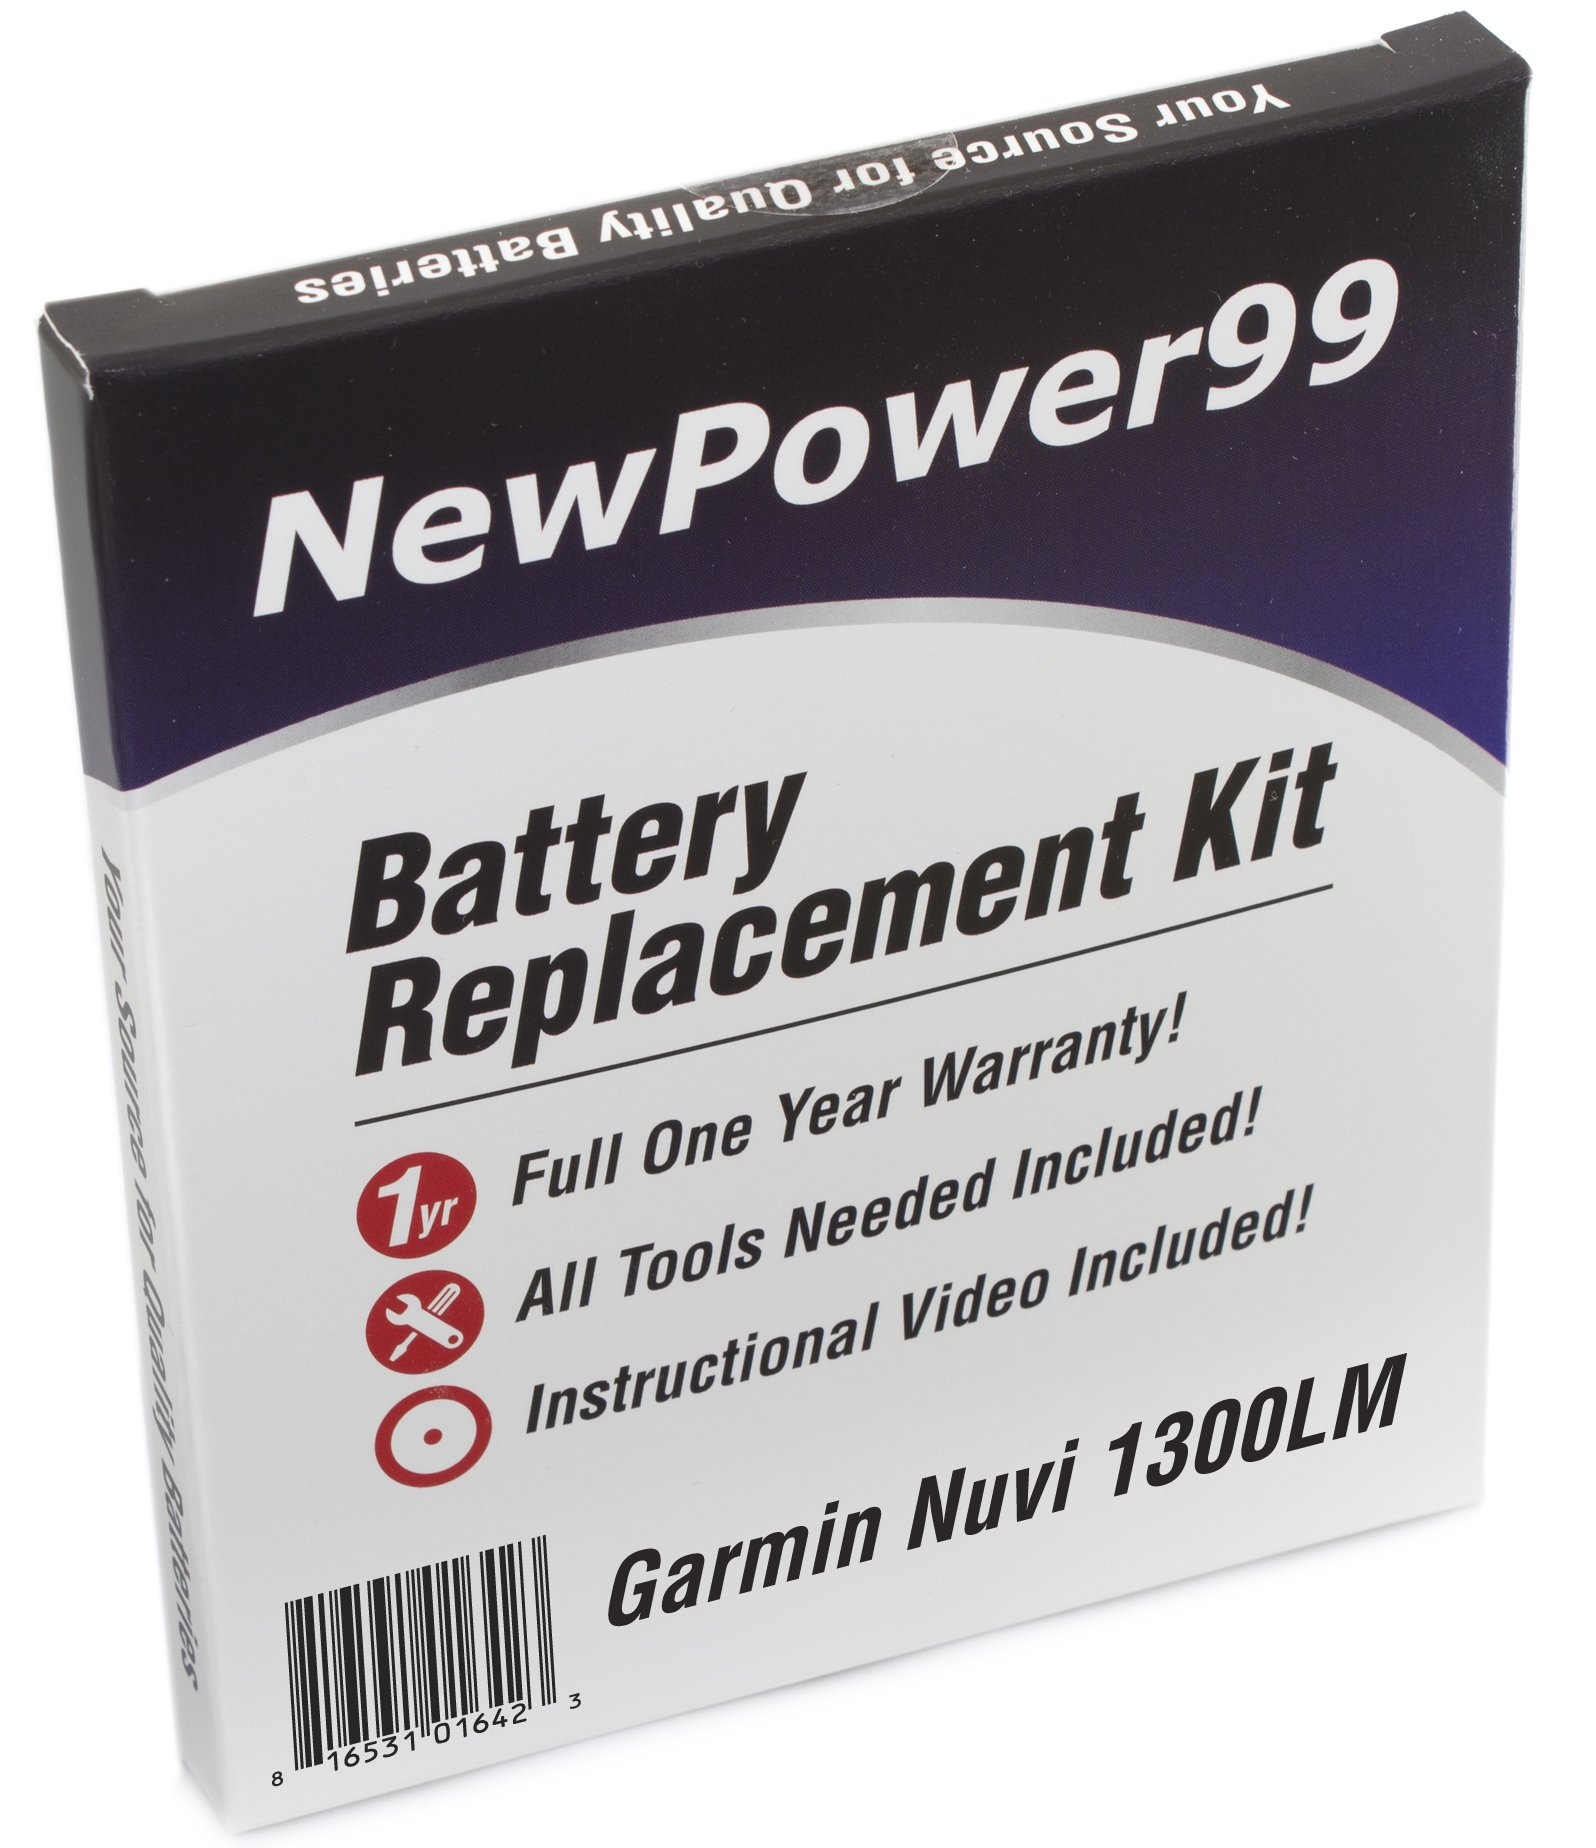 Battery Replacement Kit for Garmin Nuvi 1300LM with Installation Video, Tools, and Extended Life Battery.